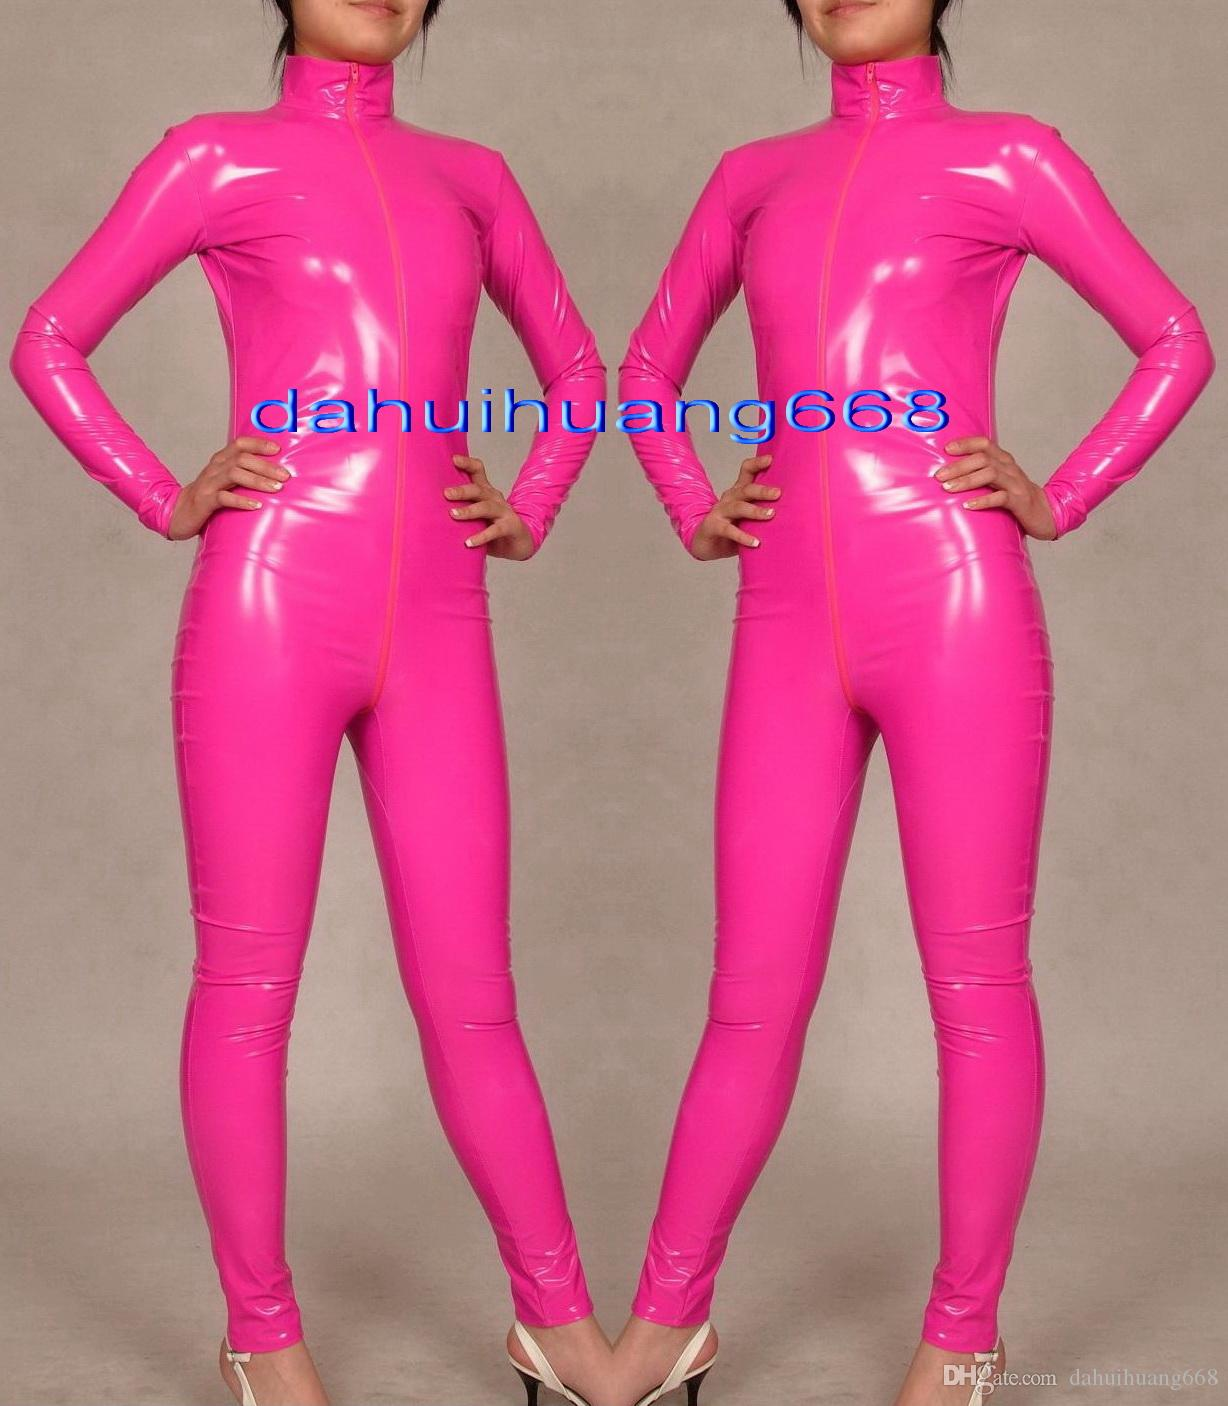 Sexy Pink Shiny PVC Suit Catsuit Costumes Unisex Shiny Pink PVC Body Suit Unisex Sexy PVC Bodysuit leotard Costumes With Long Zipper DH180